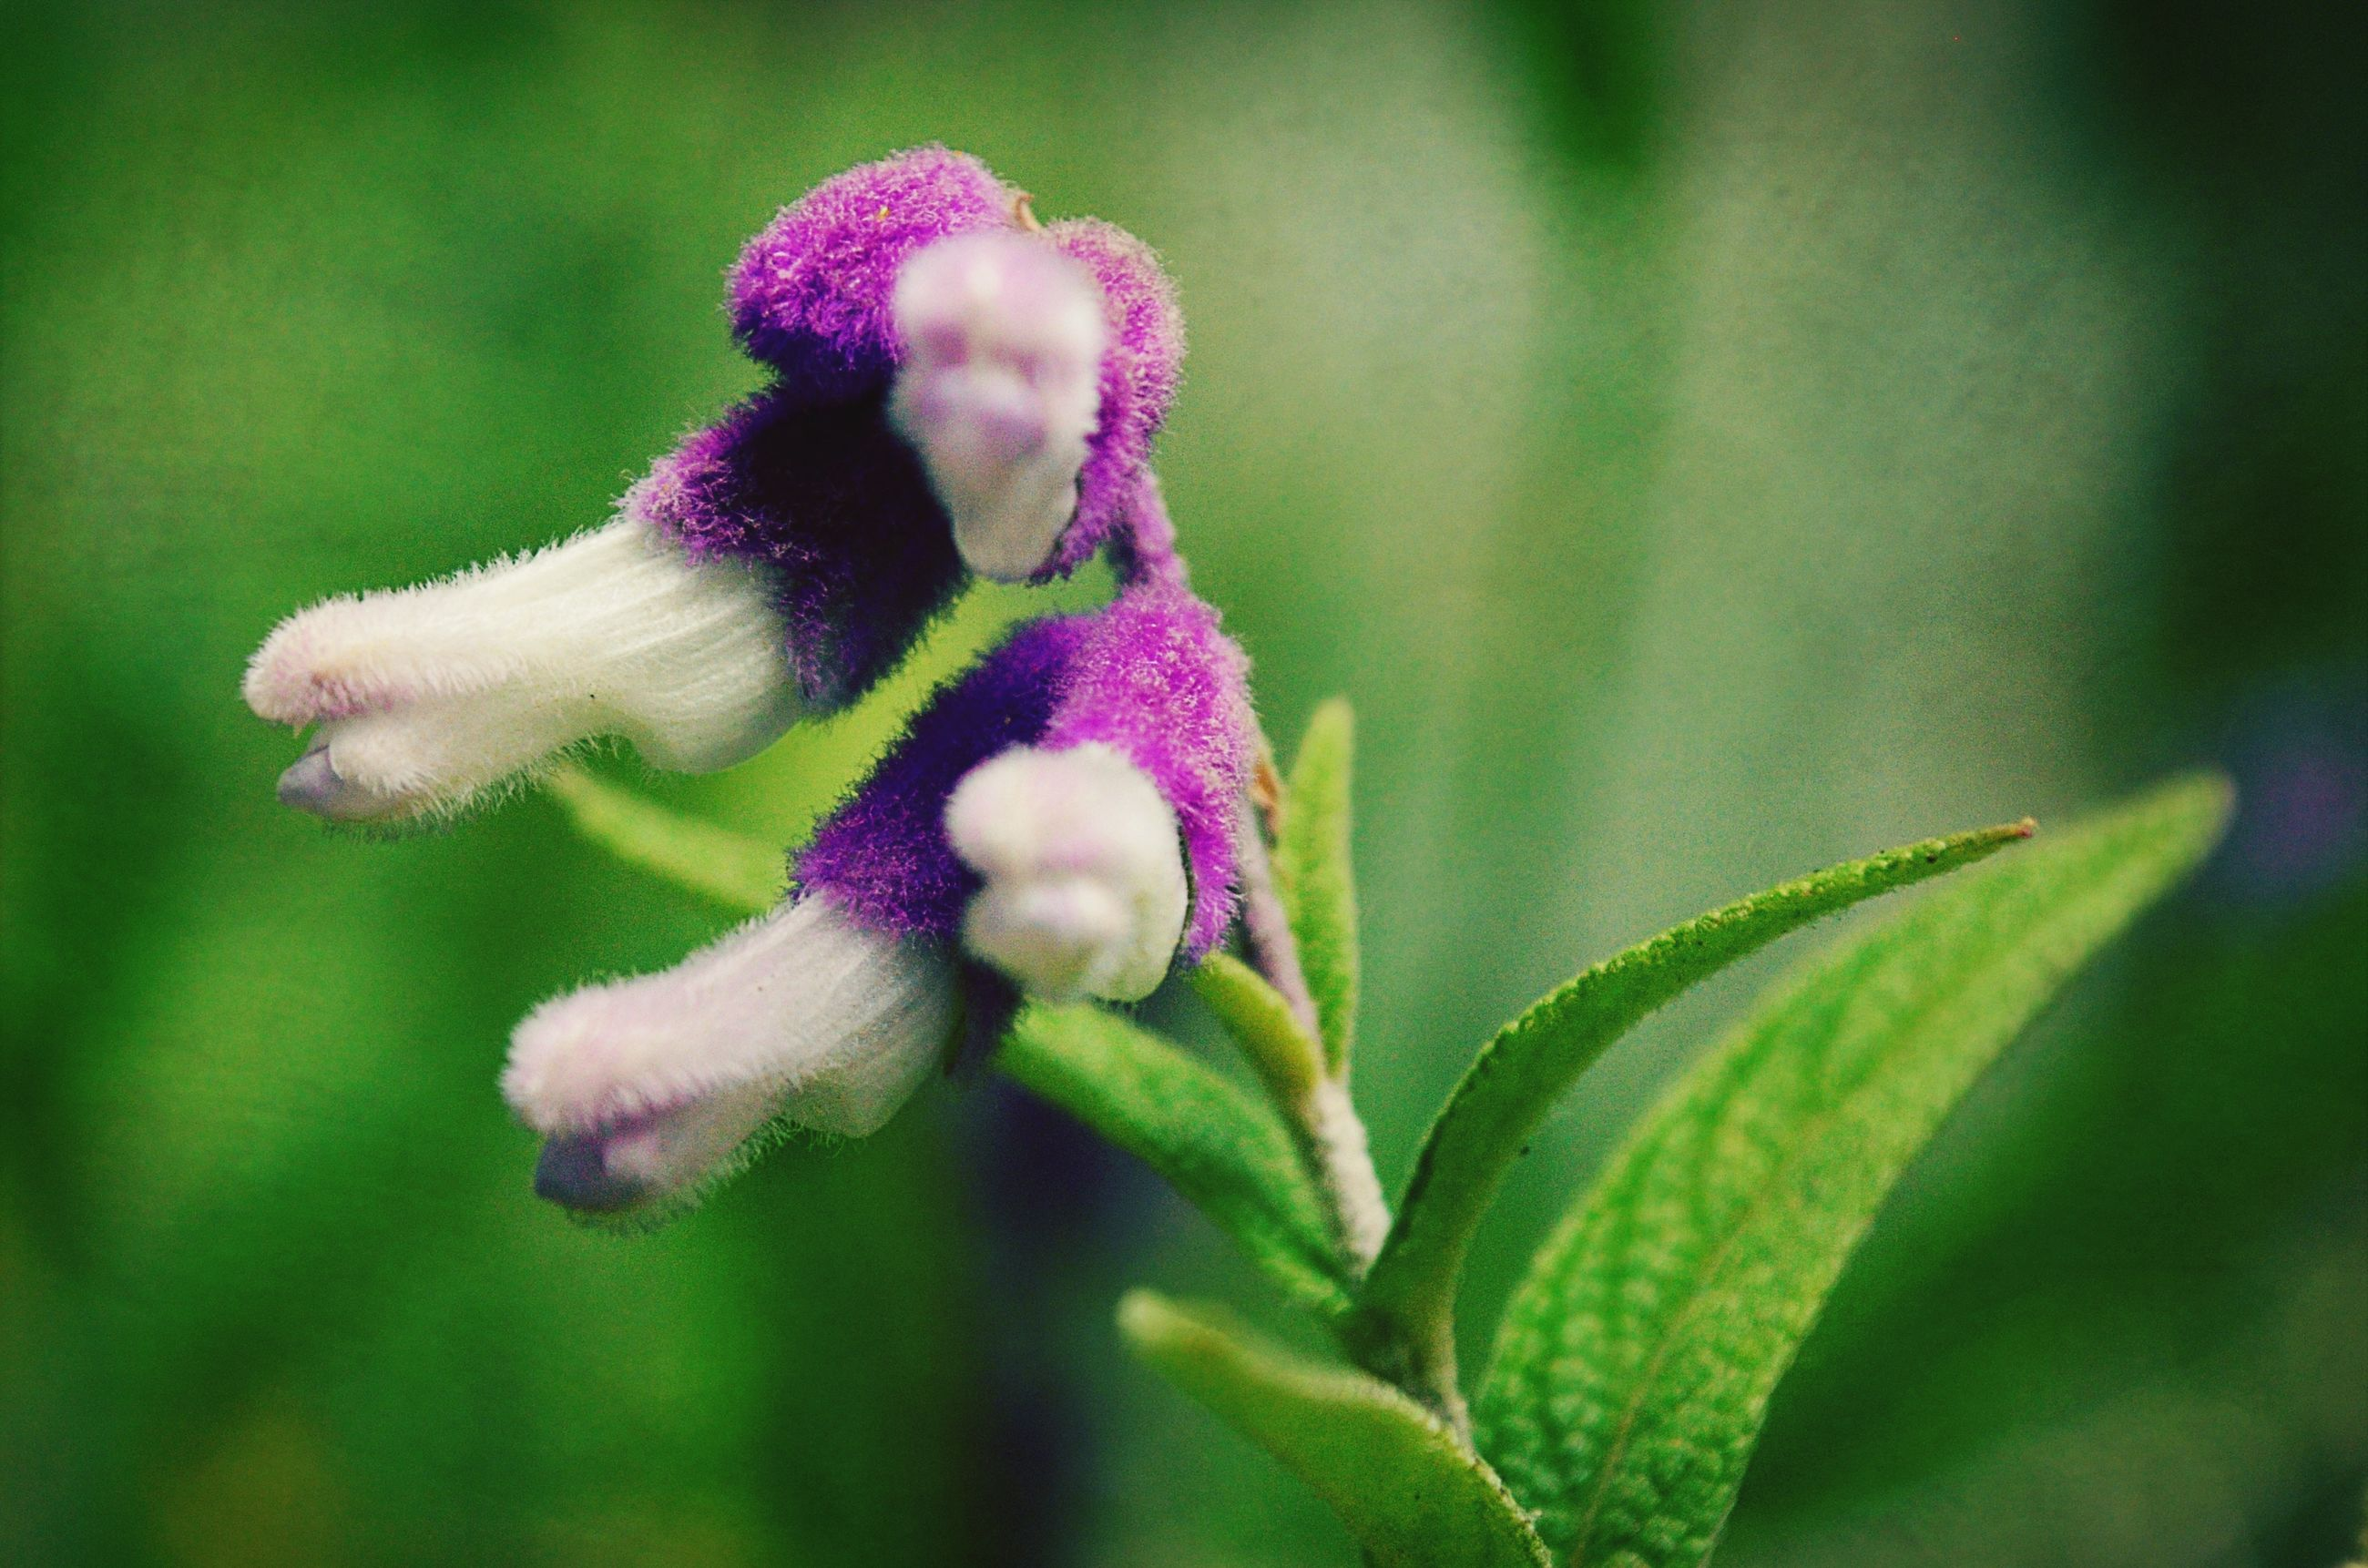 flower, freshness, growth, close-up, fragility, beauty in nature, petal, bud, plant, focus on foreground, nature, flower head, new life, selective focus, beginnings, blooming, purple, pink color, green color, day